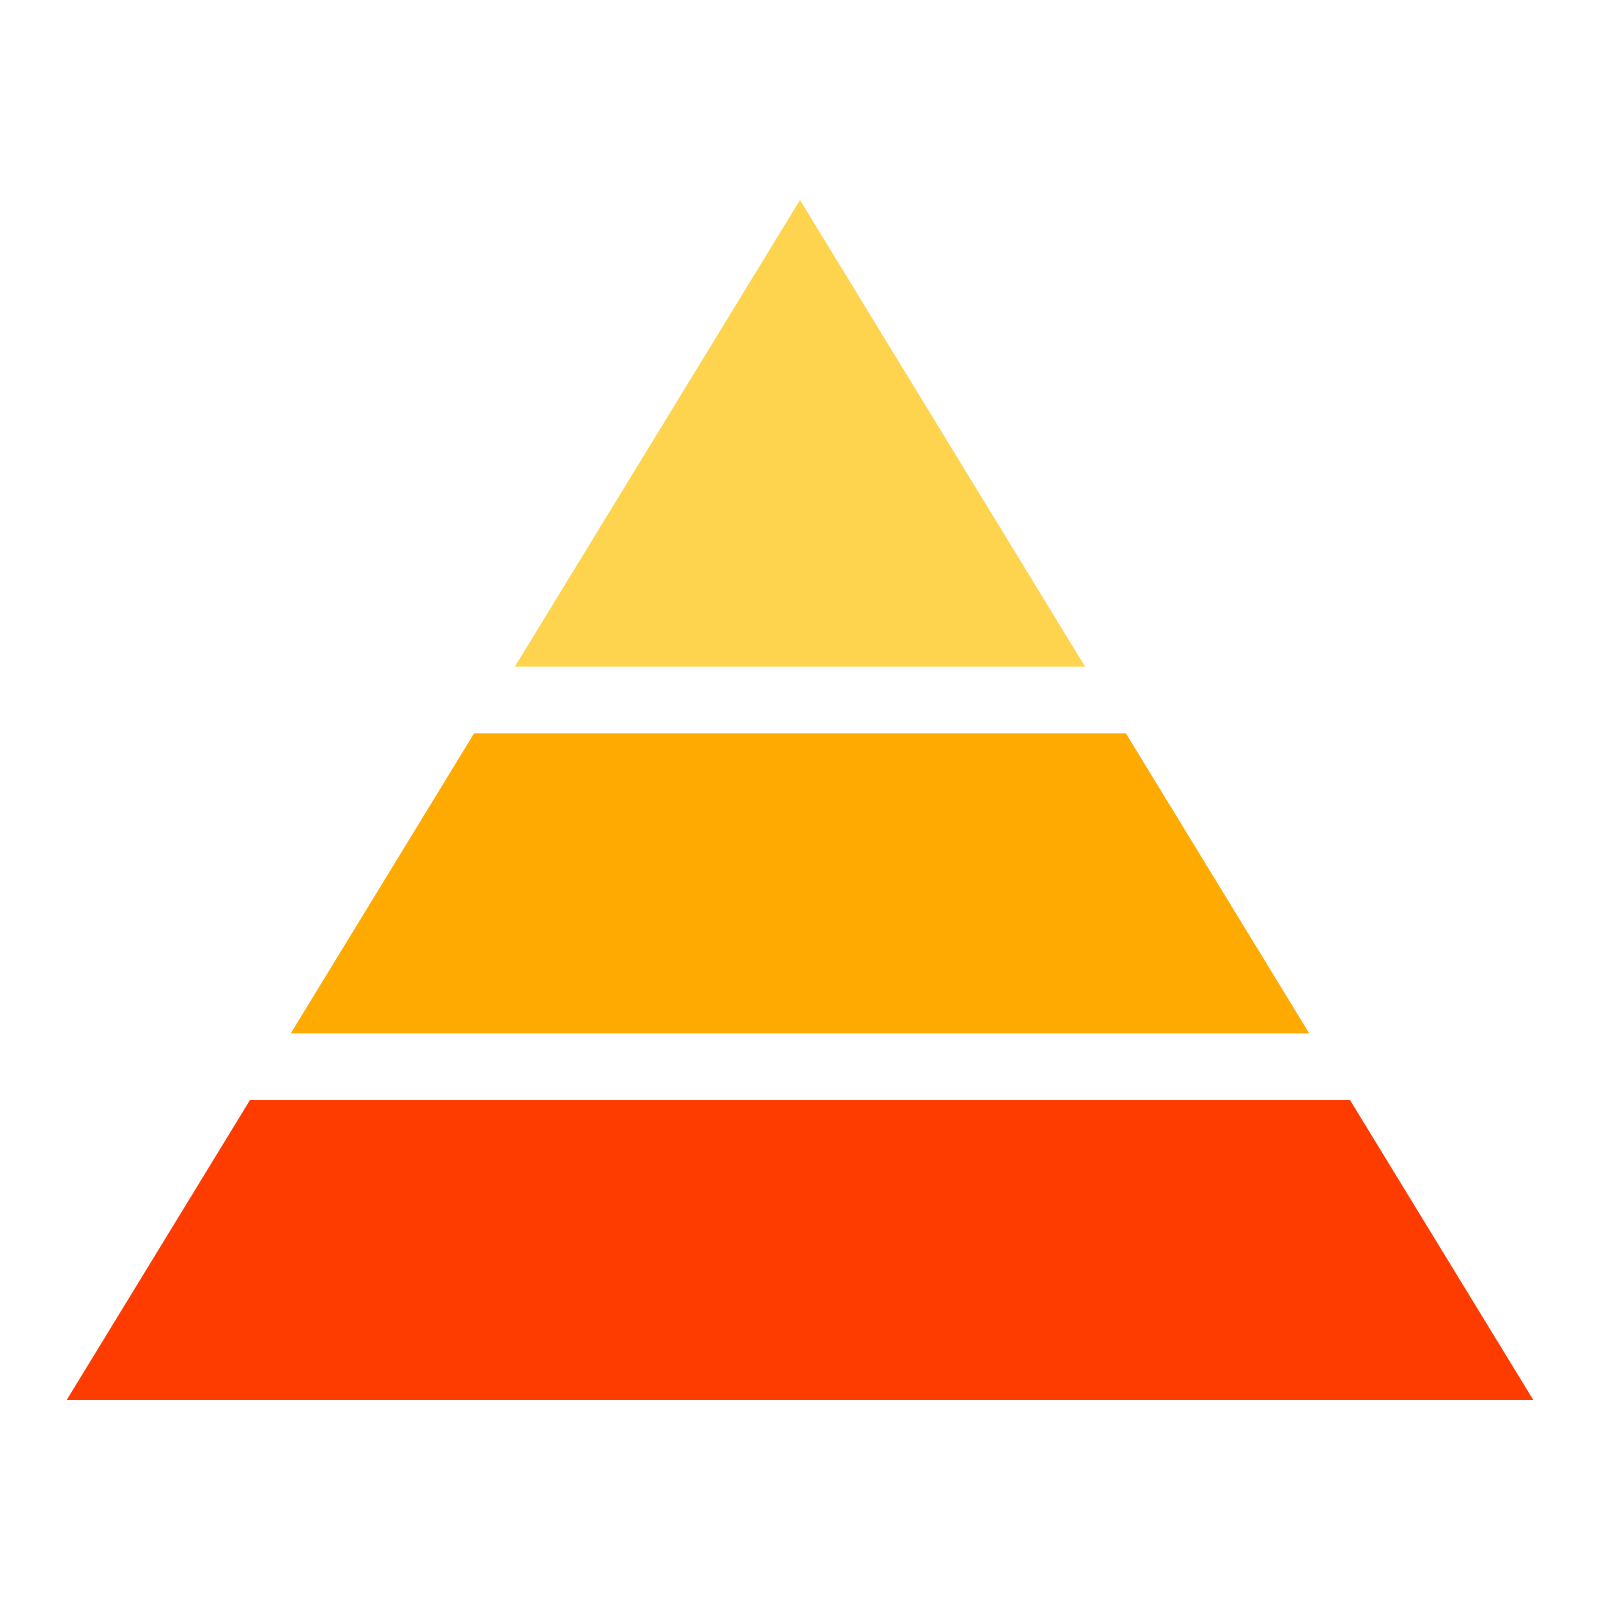 Pyramid clipart png. Egyptian pyramids computer icons